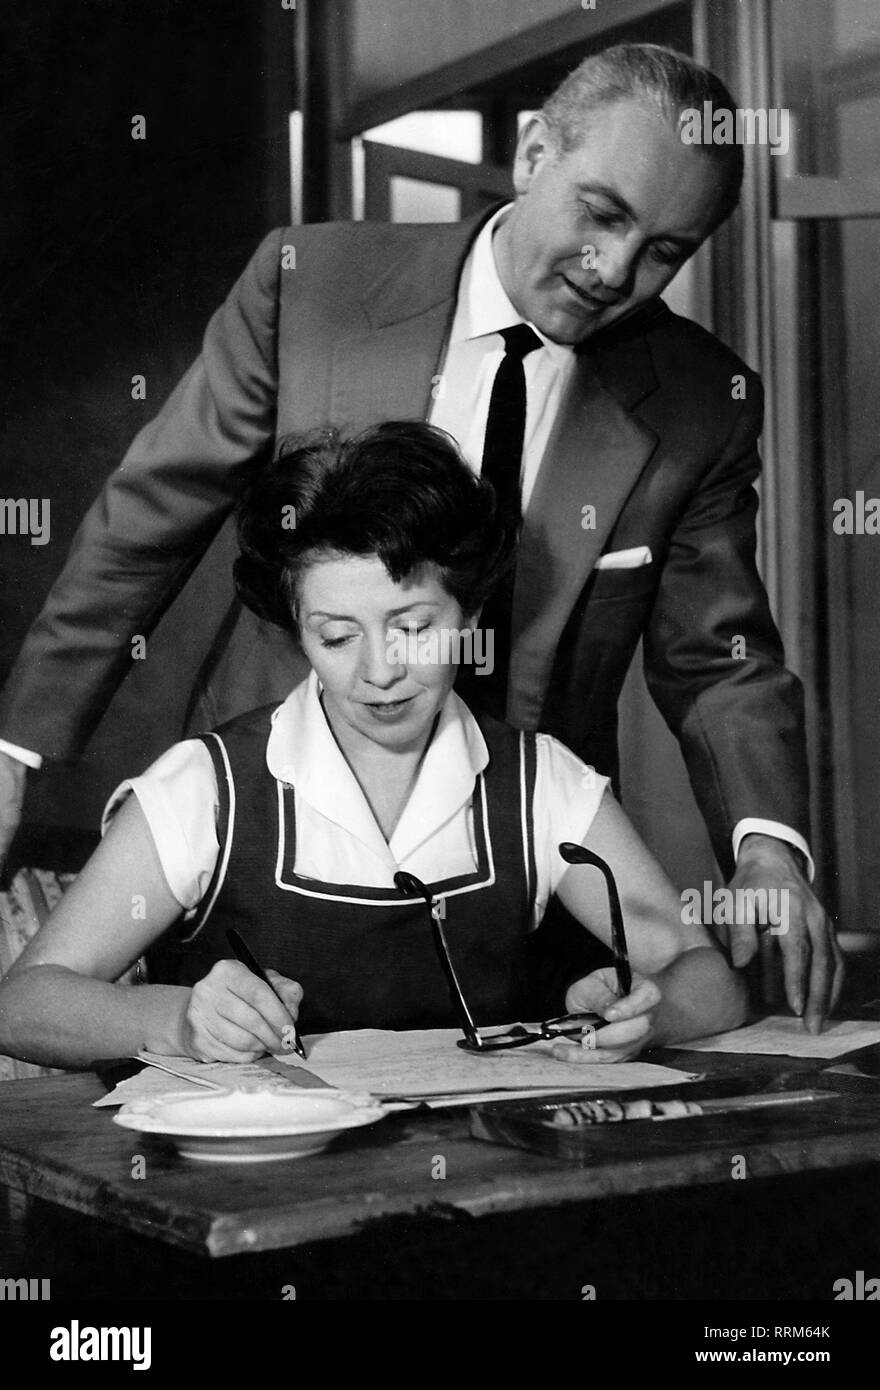 Meysel, Inge, 30.5.1910 - 10.7.2004, German actress, half length, with Hans Povetsch, 1950s, Additional-Rights-Clearance-Info-Not-Available - Stock Image